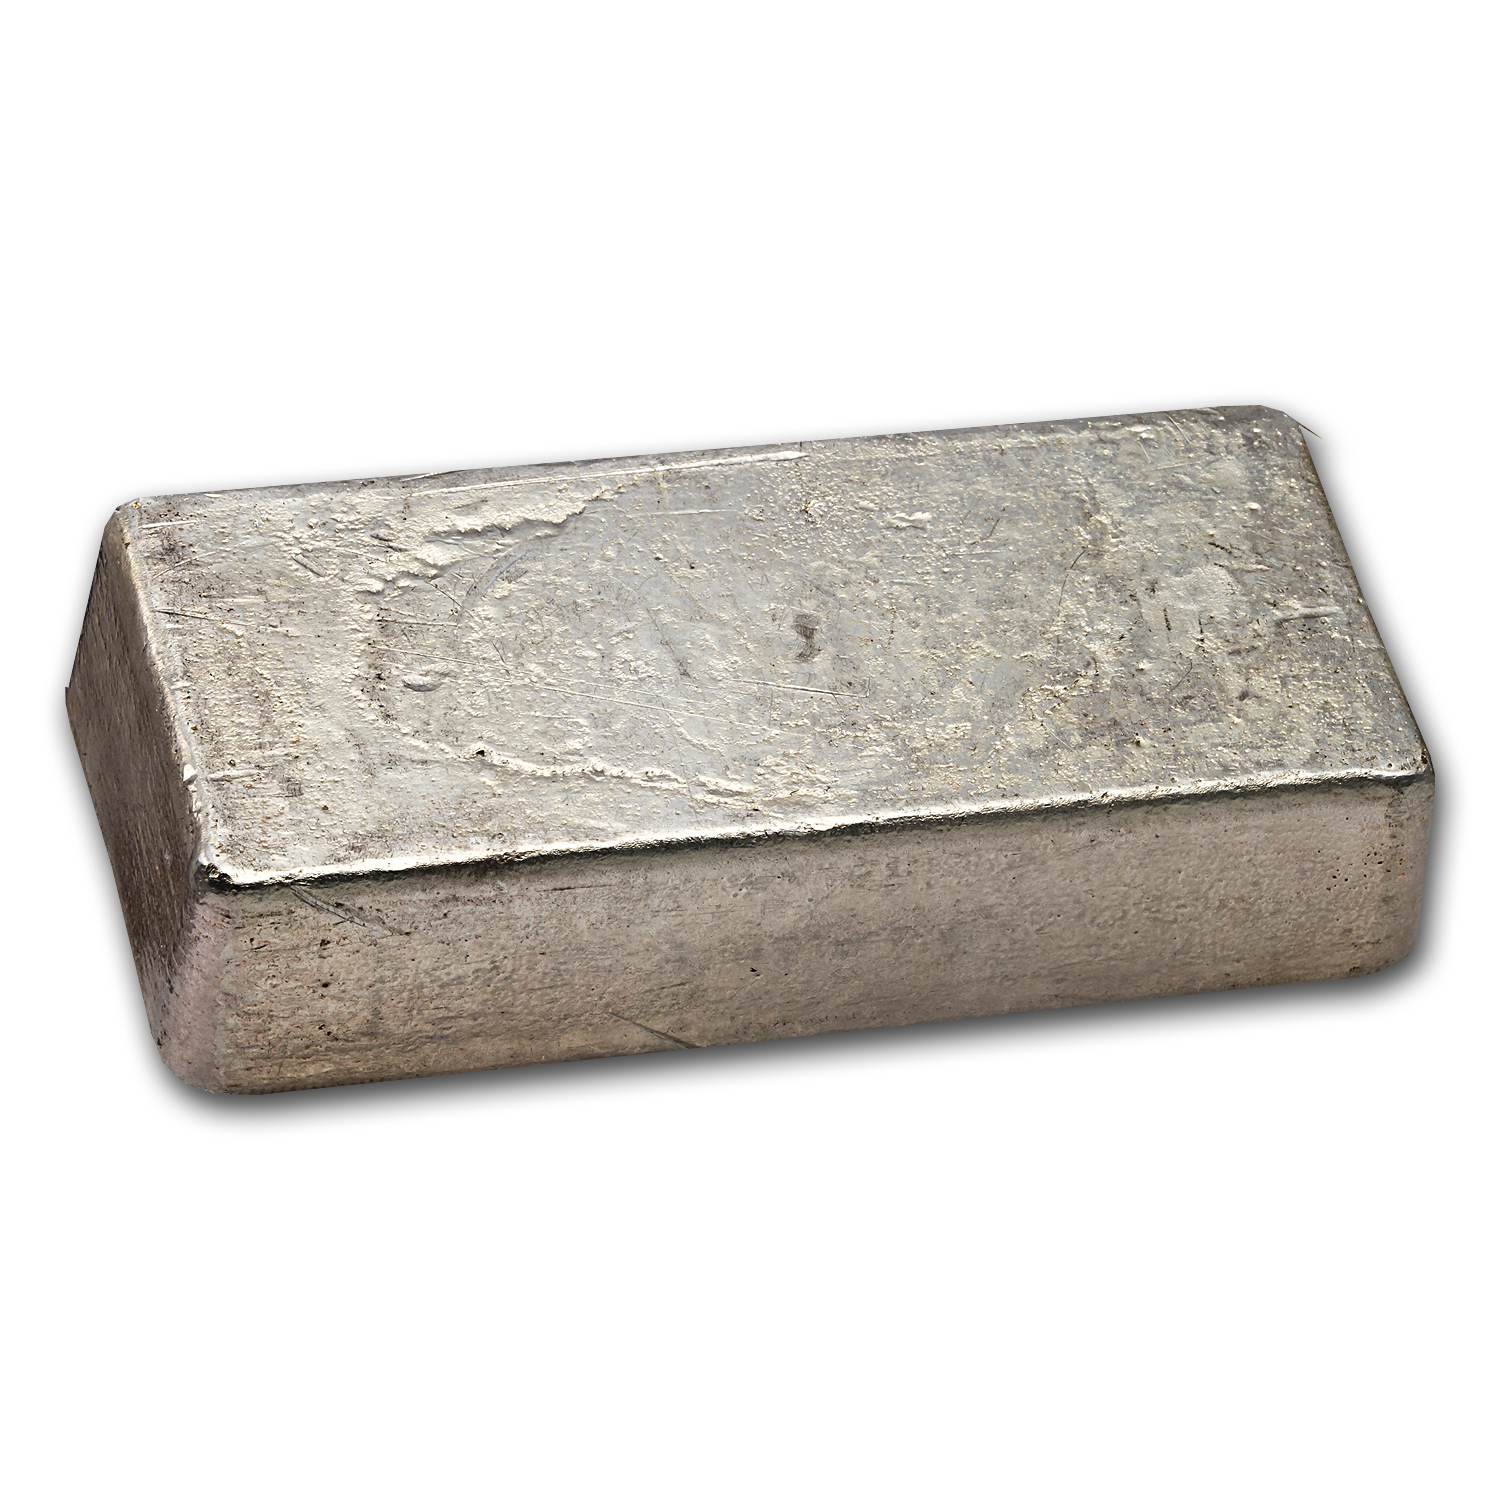 50 oz Silver Bar - Engelhard (Poured/Bull Logo)